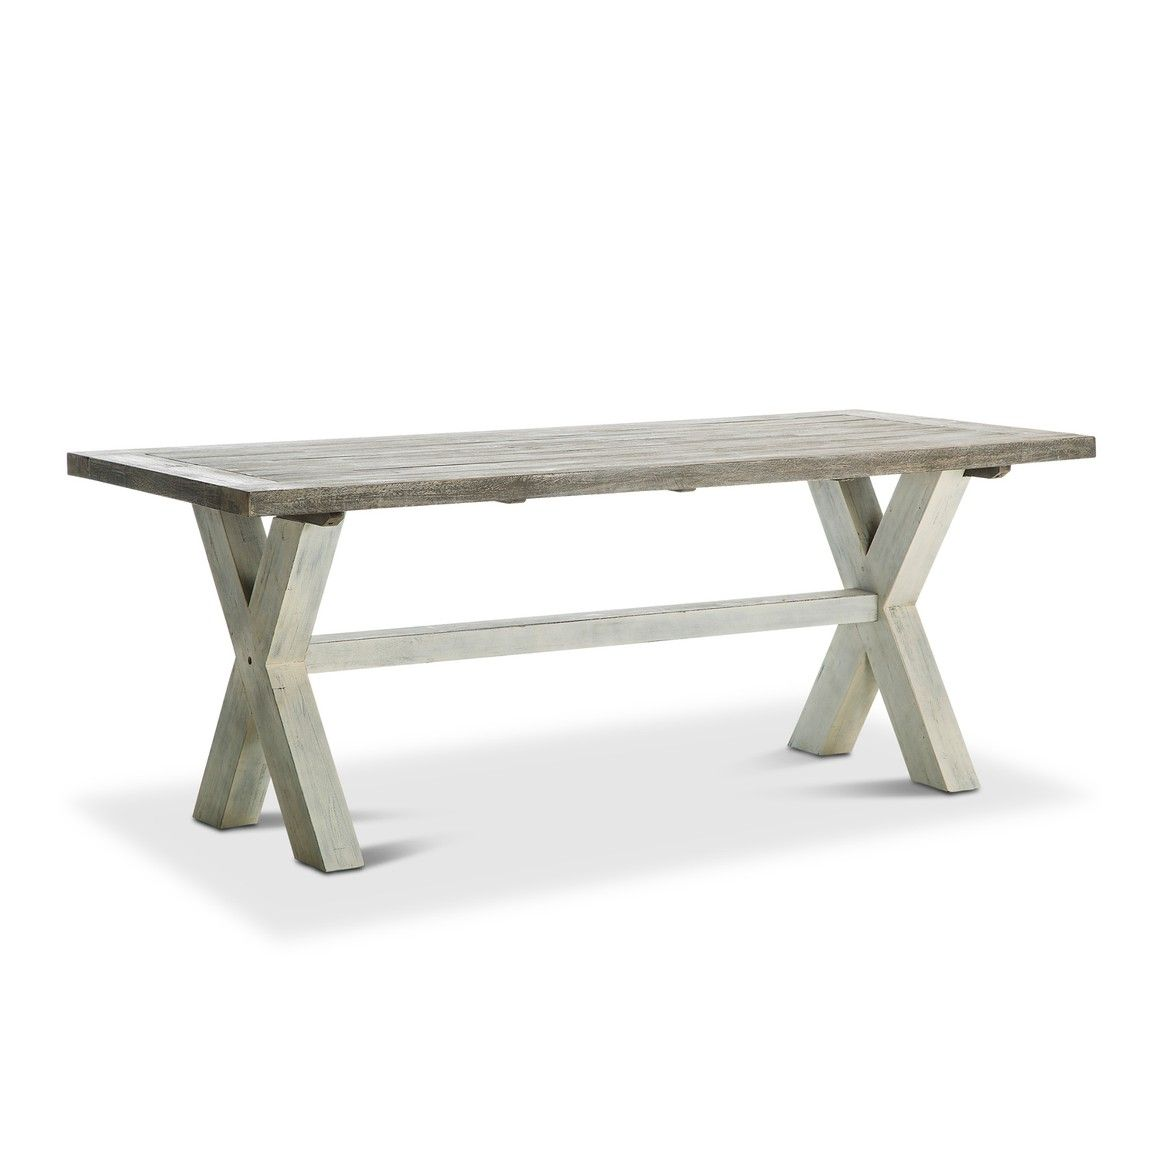 Nordby Bank Nordby Norwich Acacia 16525300 Casita Table Dining Bench